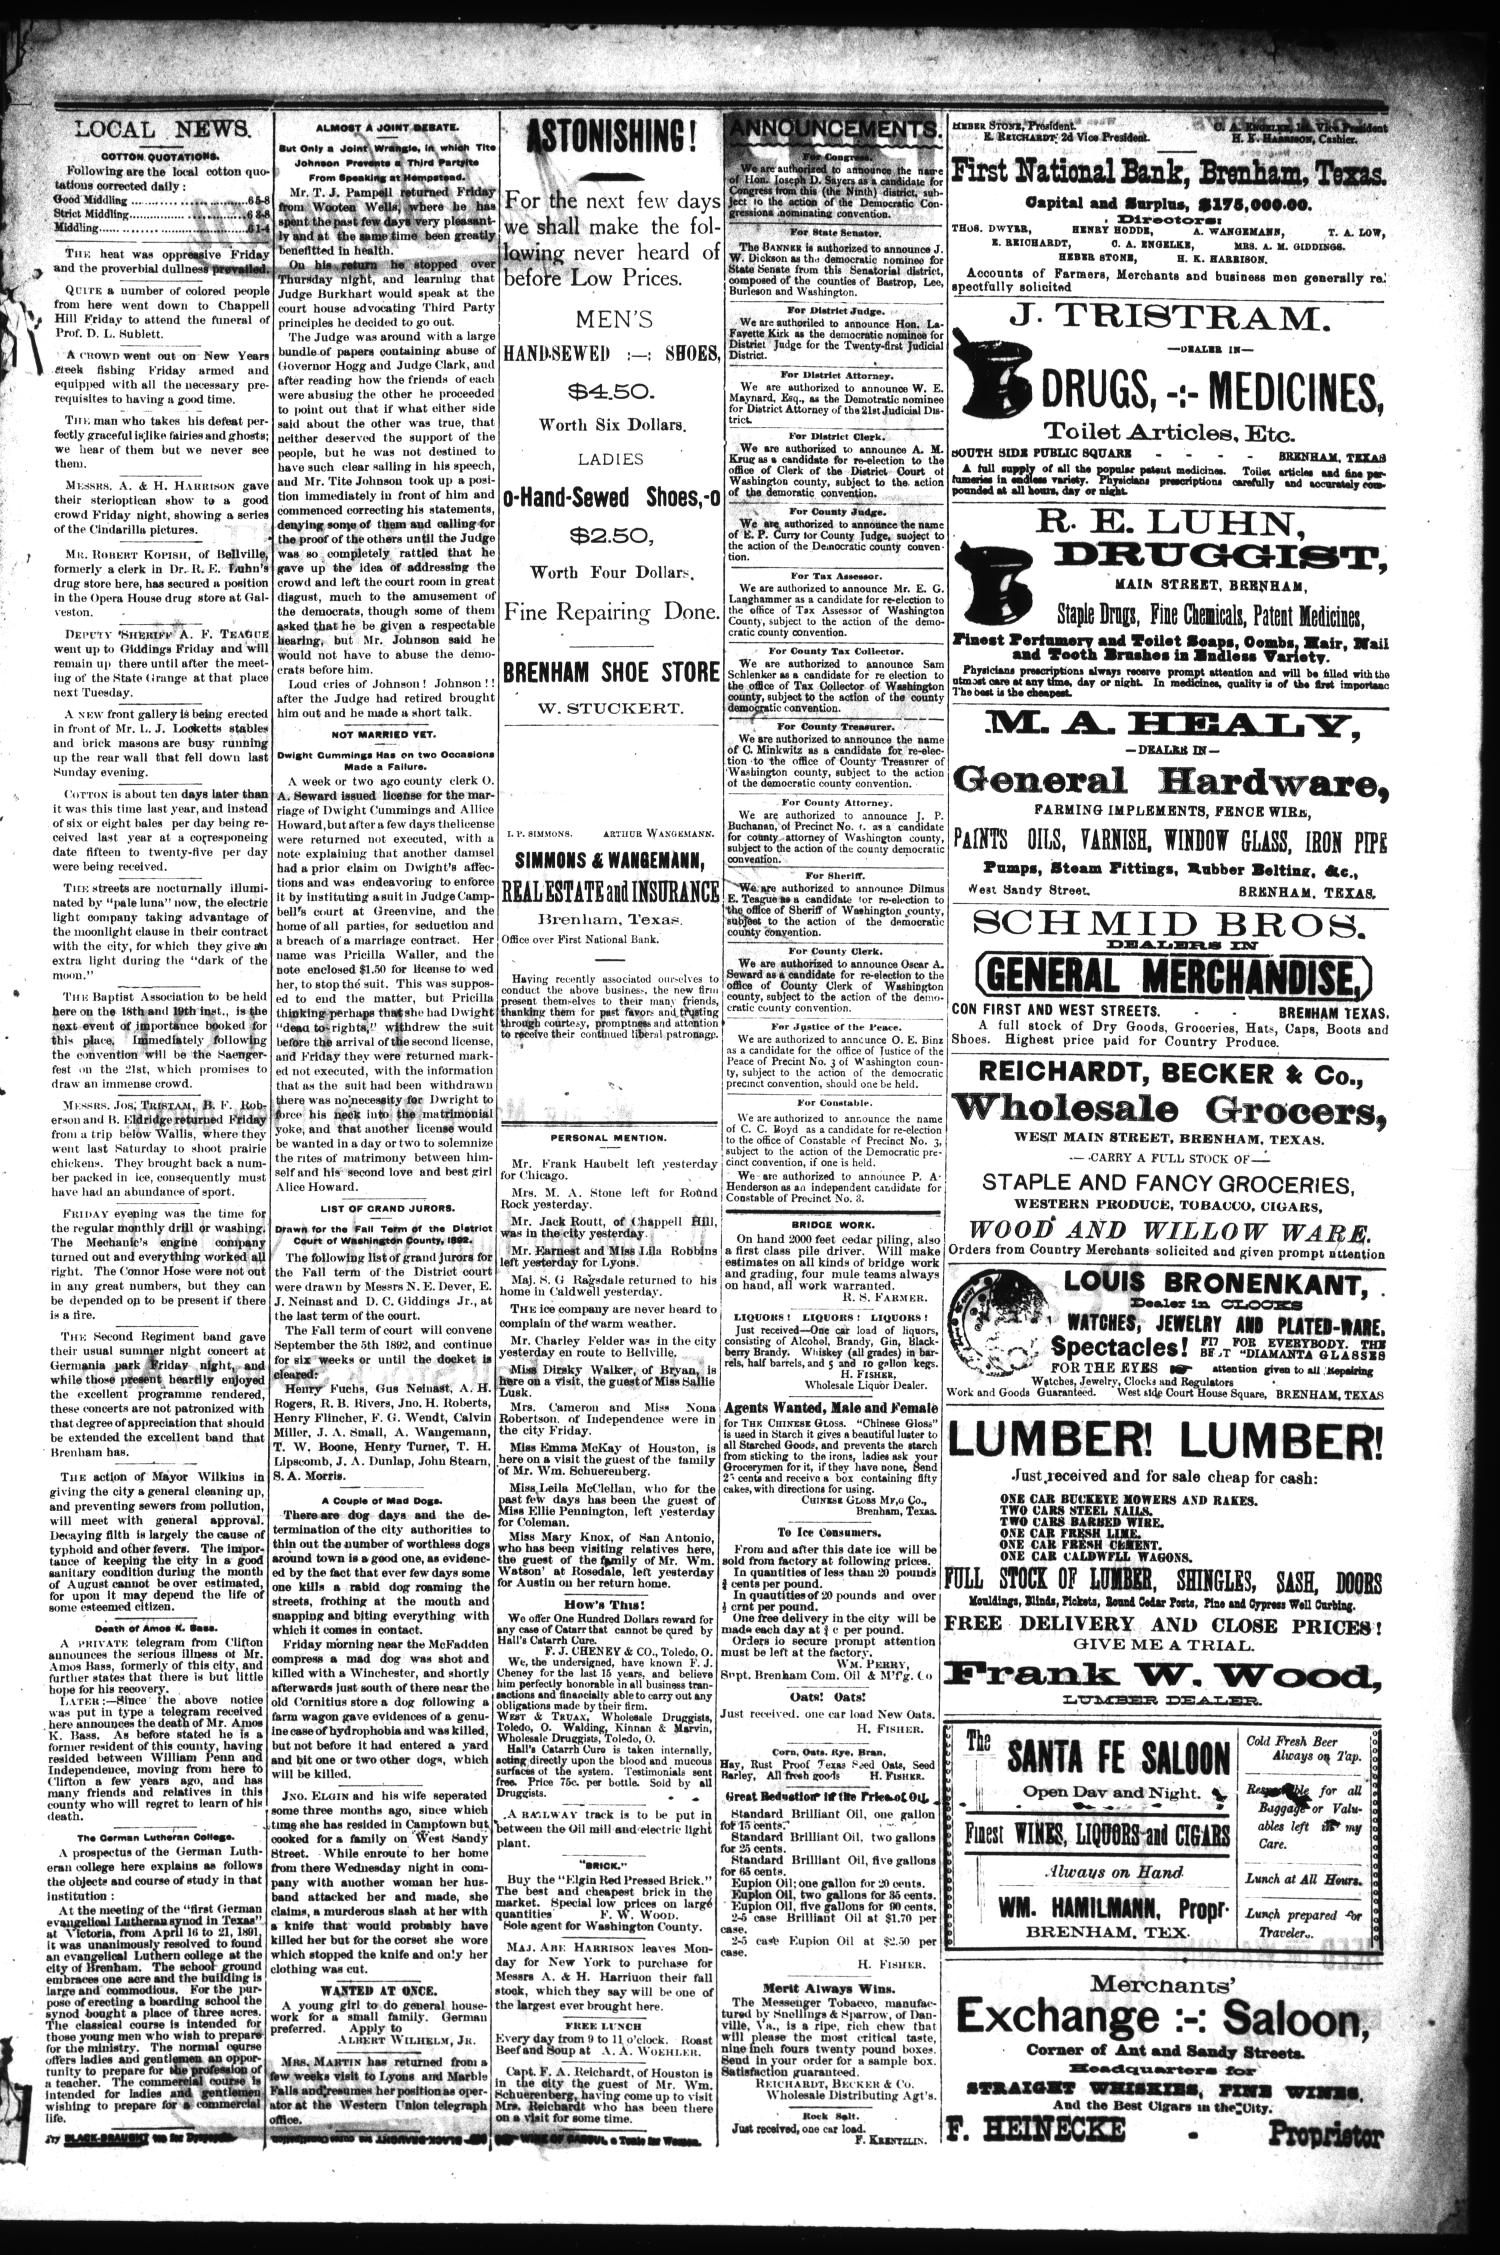 Brenham Daily Banner. (Brenham, Tex.), Vol. 17, No. 189, Ed. 1 Saturday, August 6, 1892                                                                                                      [Sequence #]: 3 of 4